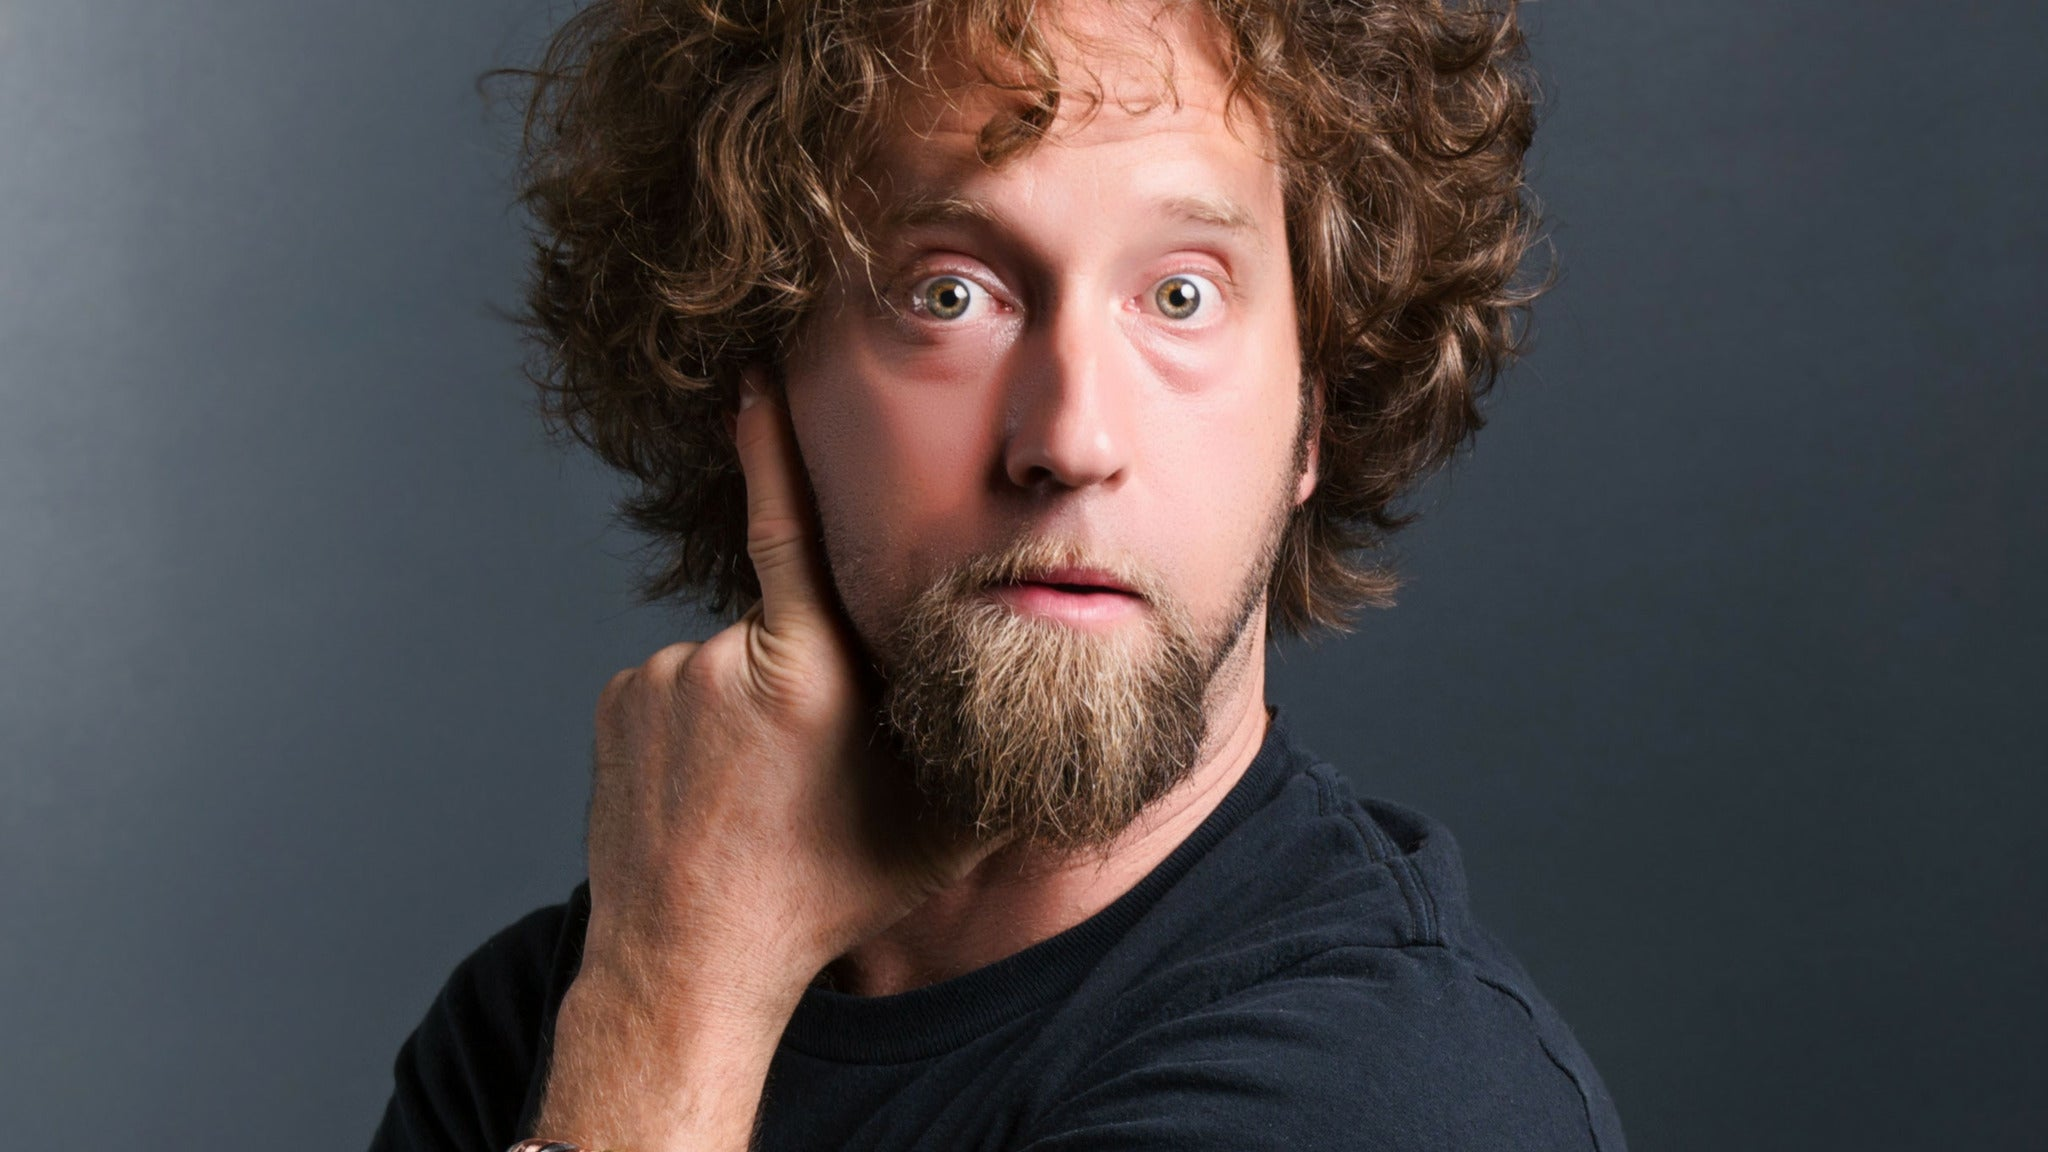 CoMo Comedy Club Presents JOSH BLUE - 7:00 PM